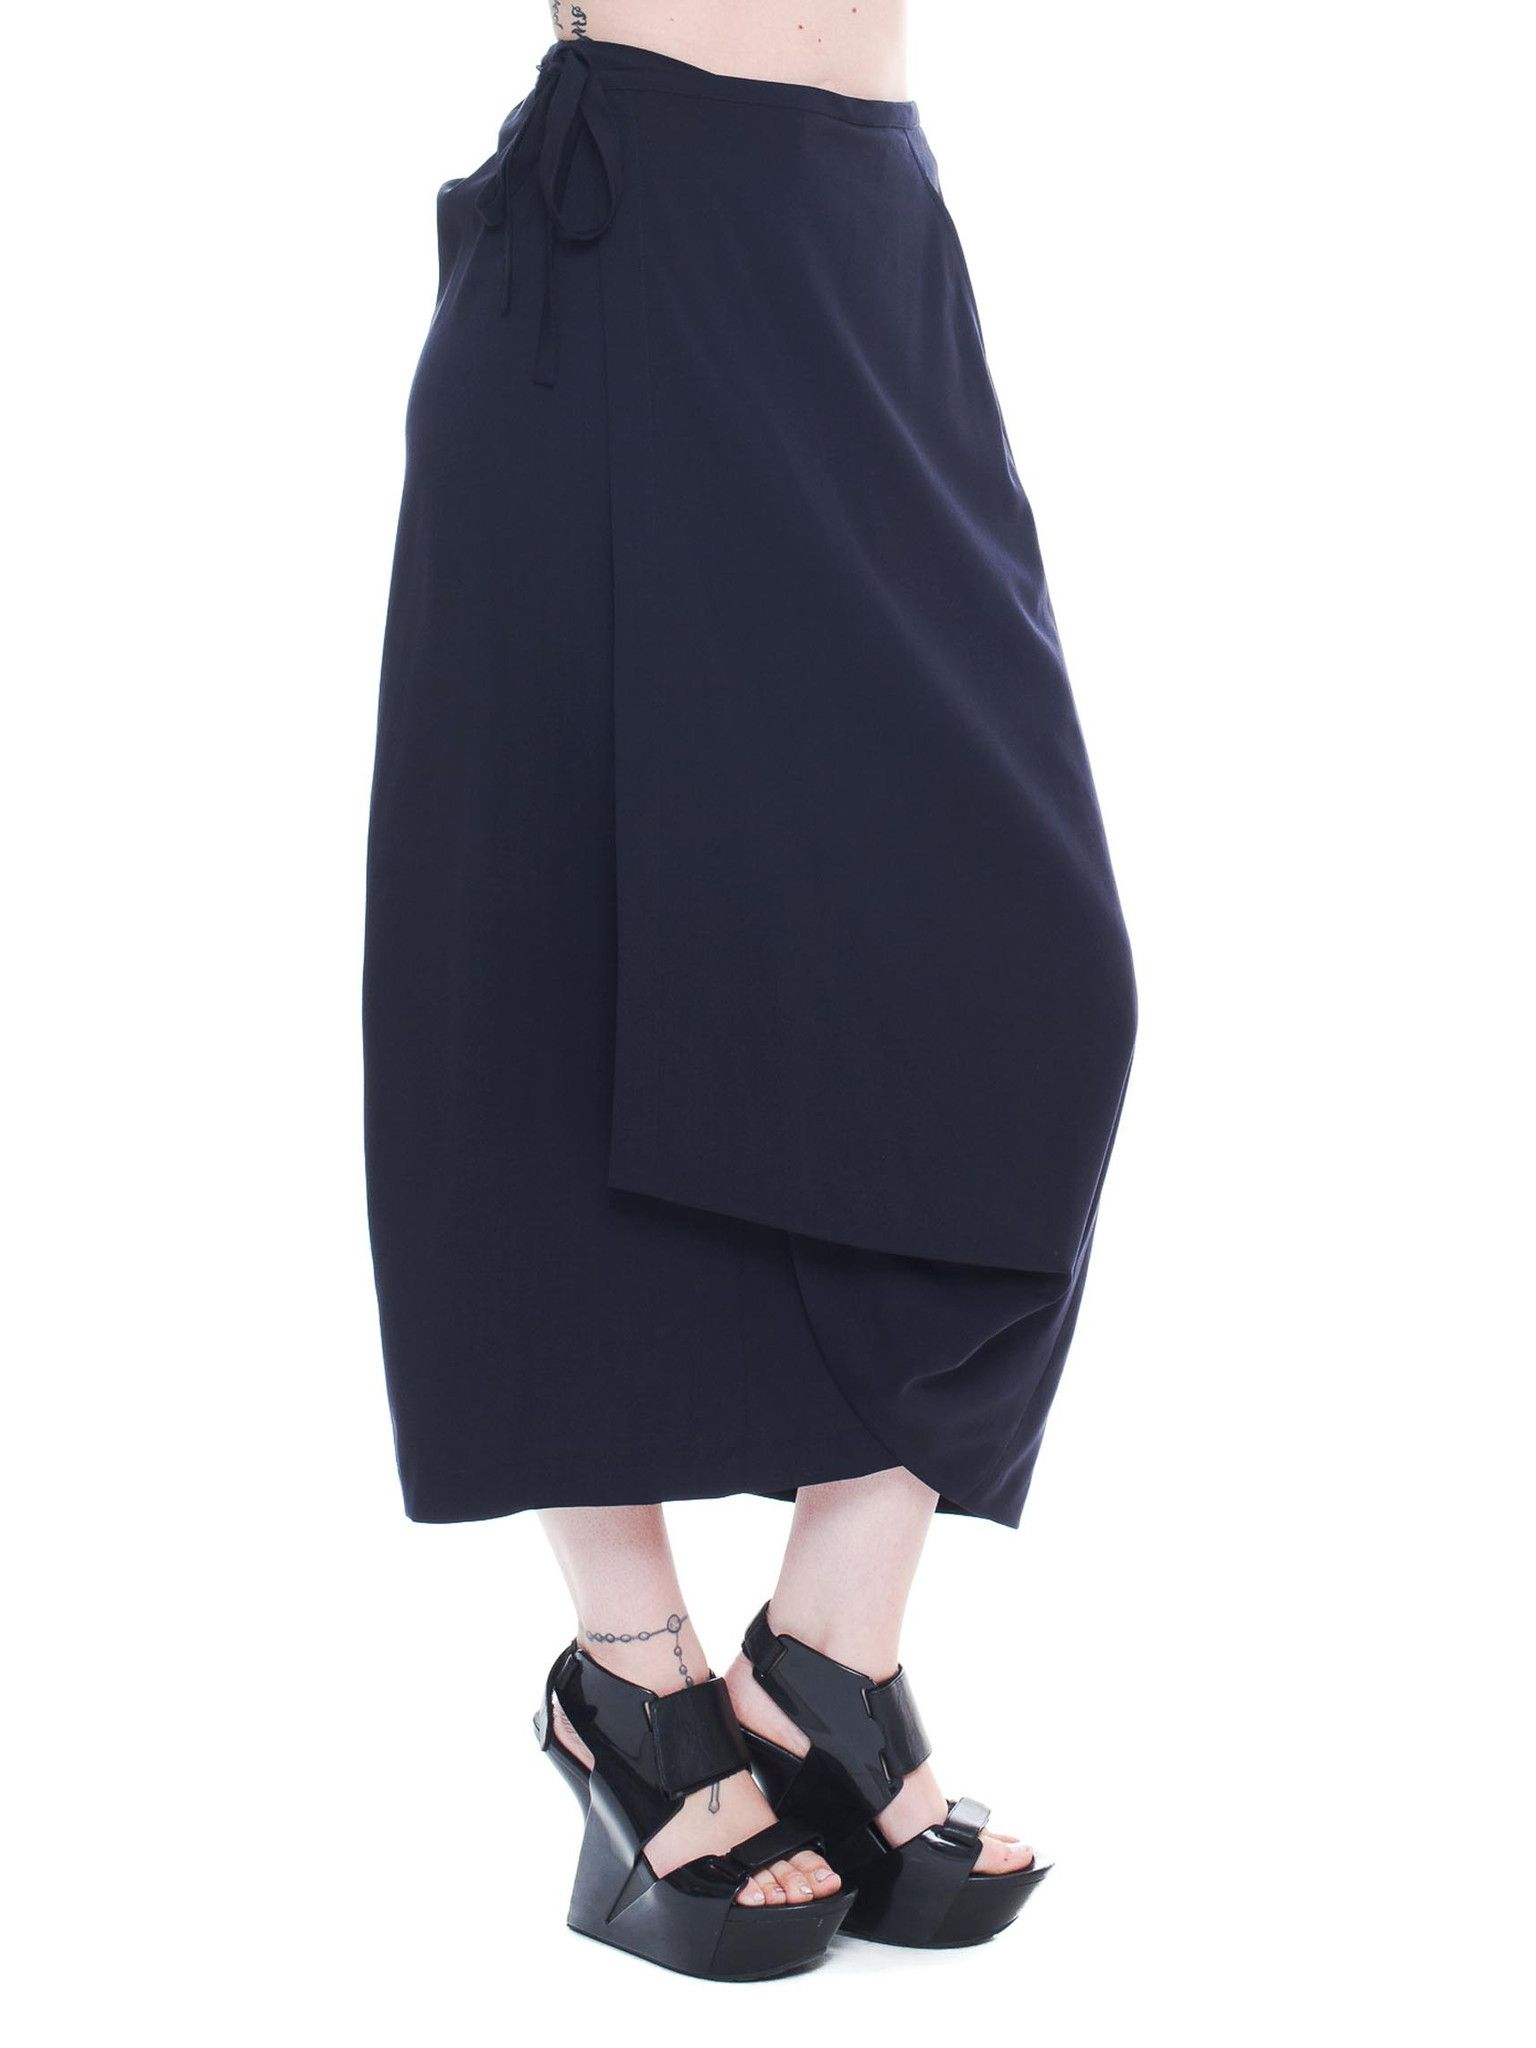 Vintage Comme Des Garcons Long Black Wrap Skirt | Fnew | Pinterest ...